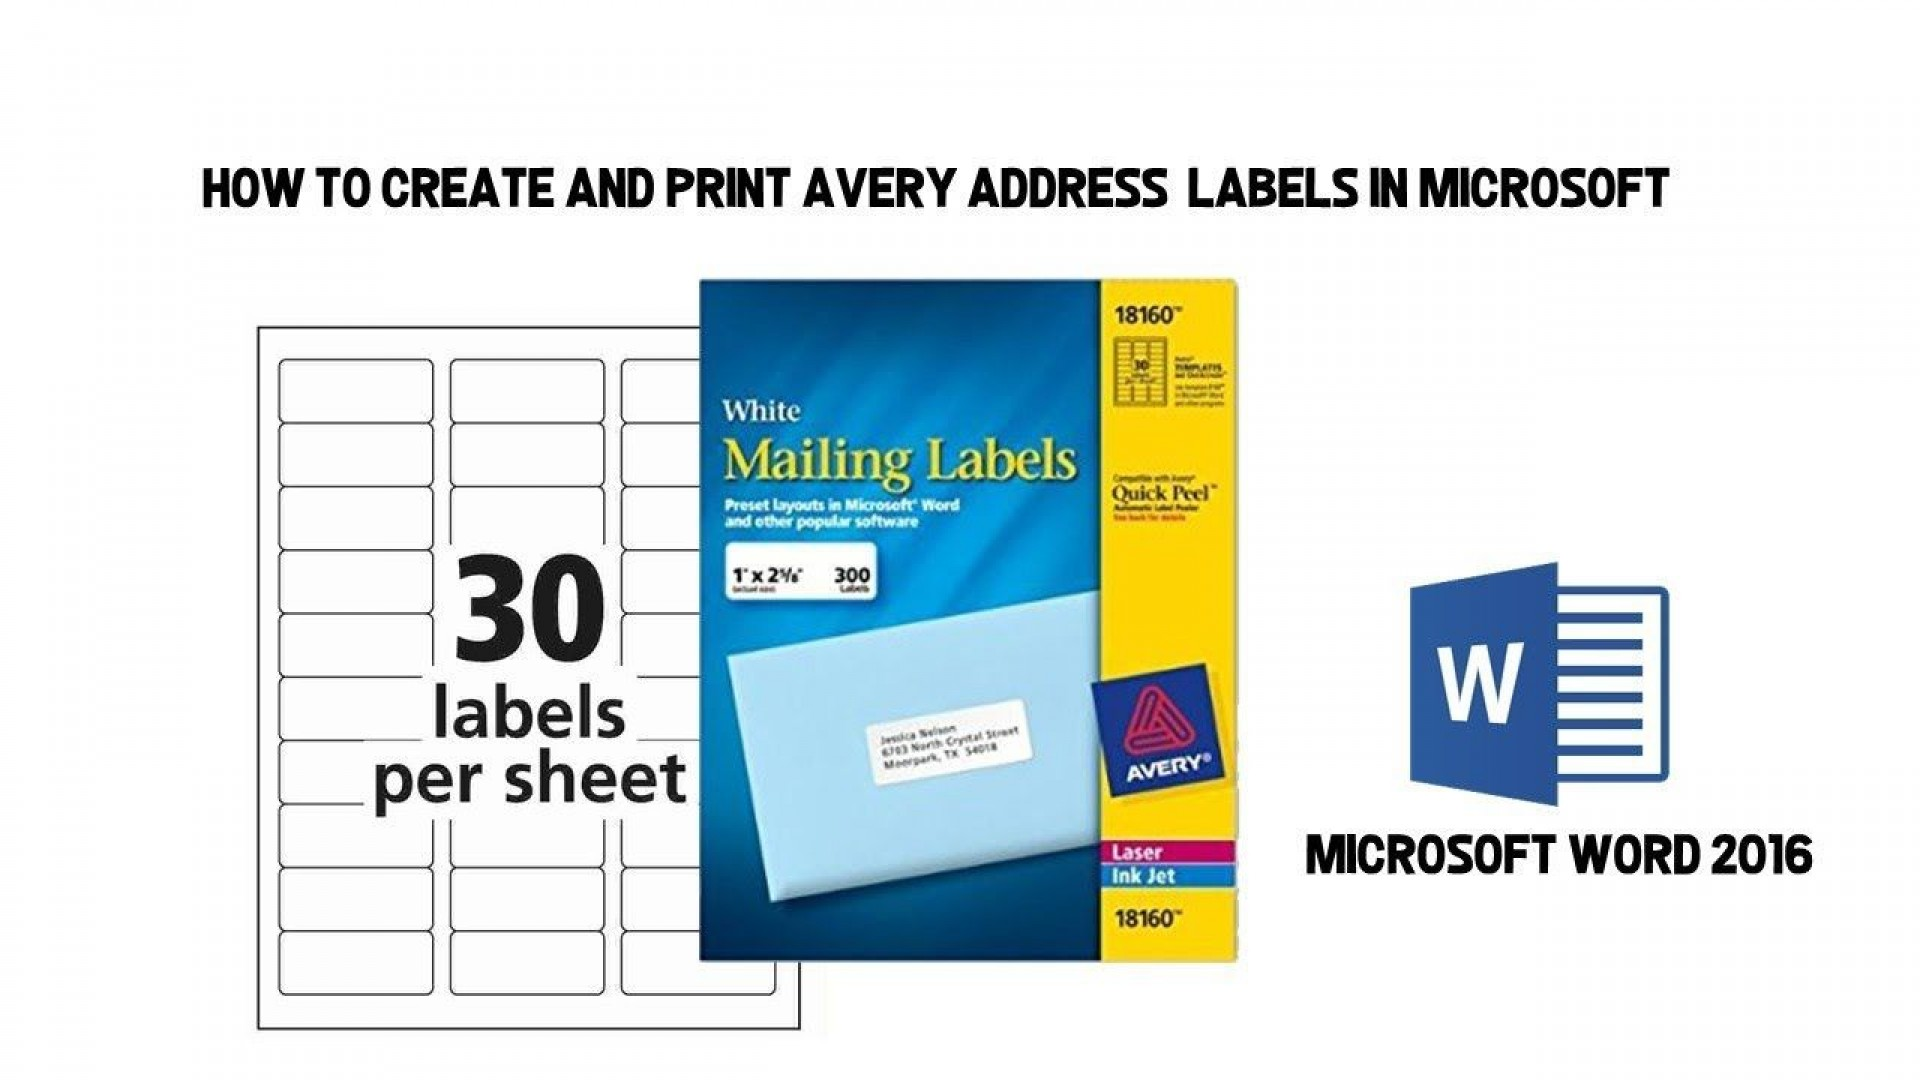 004 Awesome Avery Label Template In Word Idea  5164 For Mac Big Tab 8 20101920